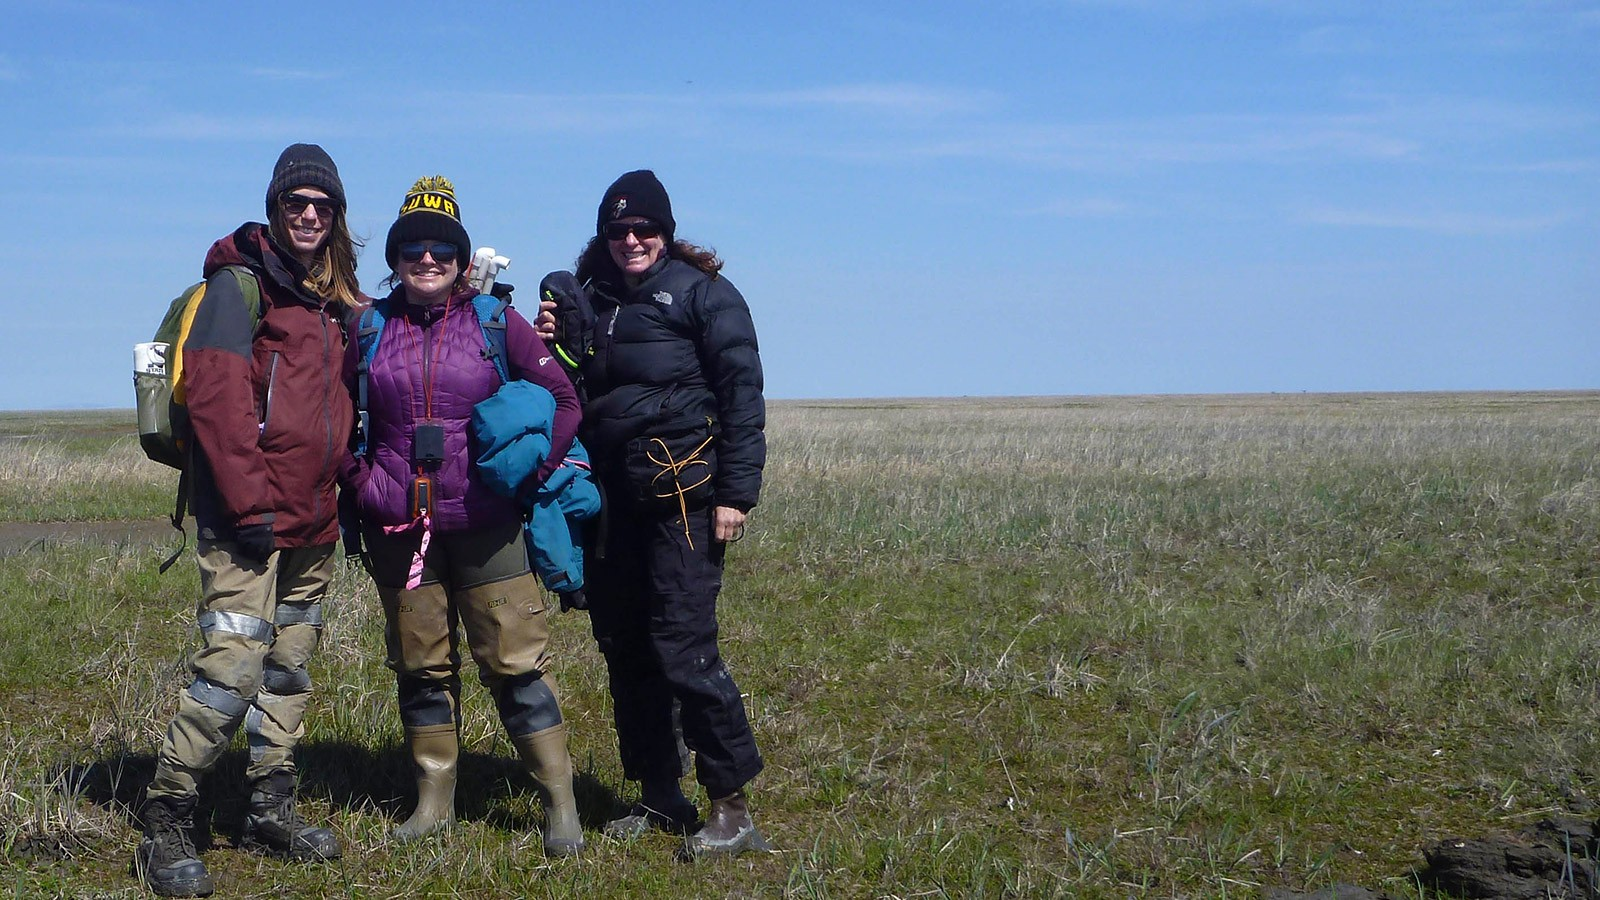 Bonnie Waring, master's student Karen Foley, and researcher Karen Beard in the Yukon.